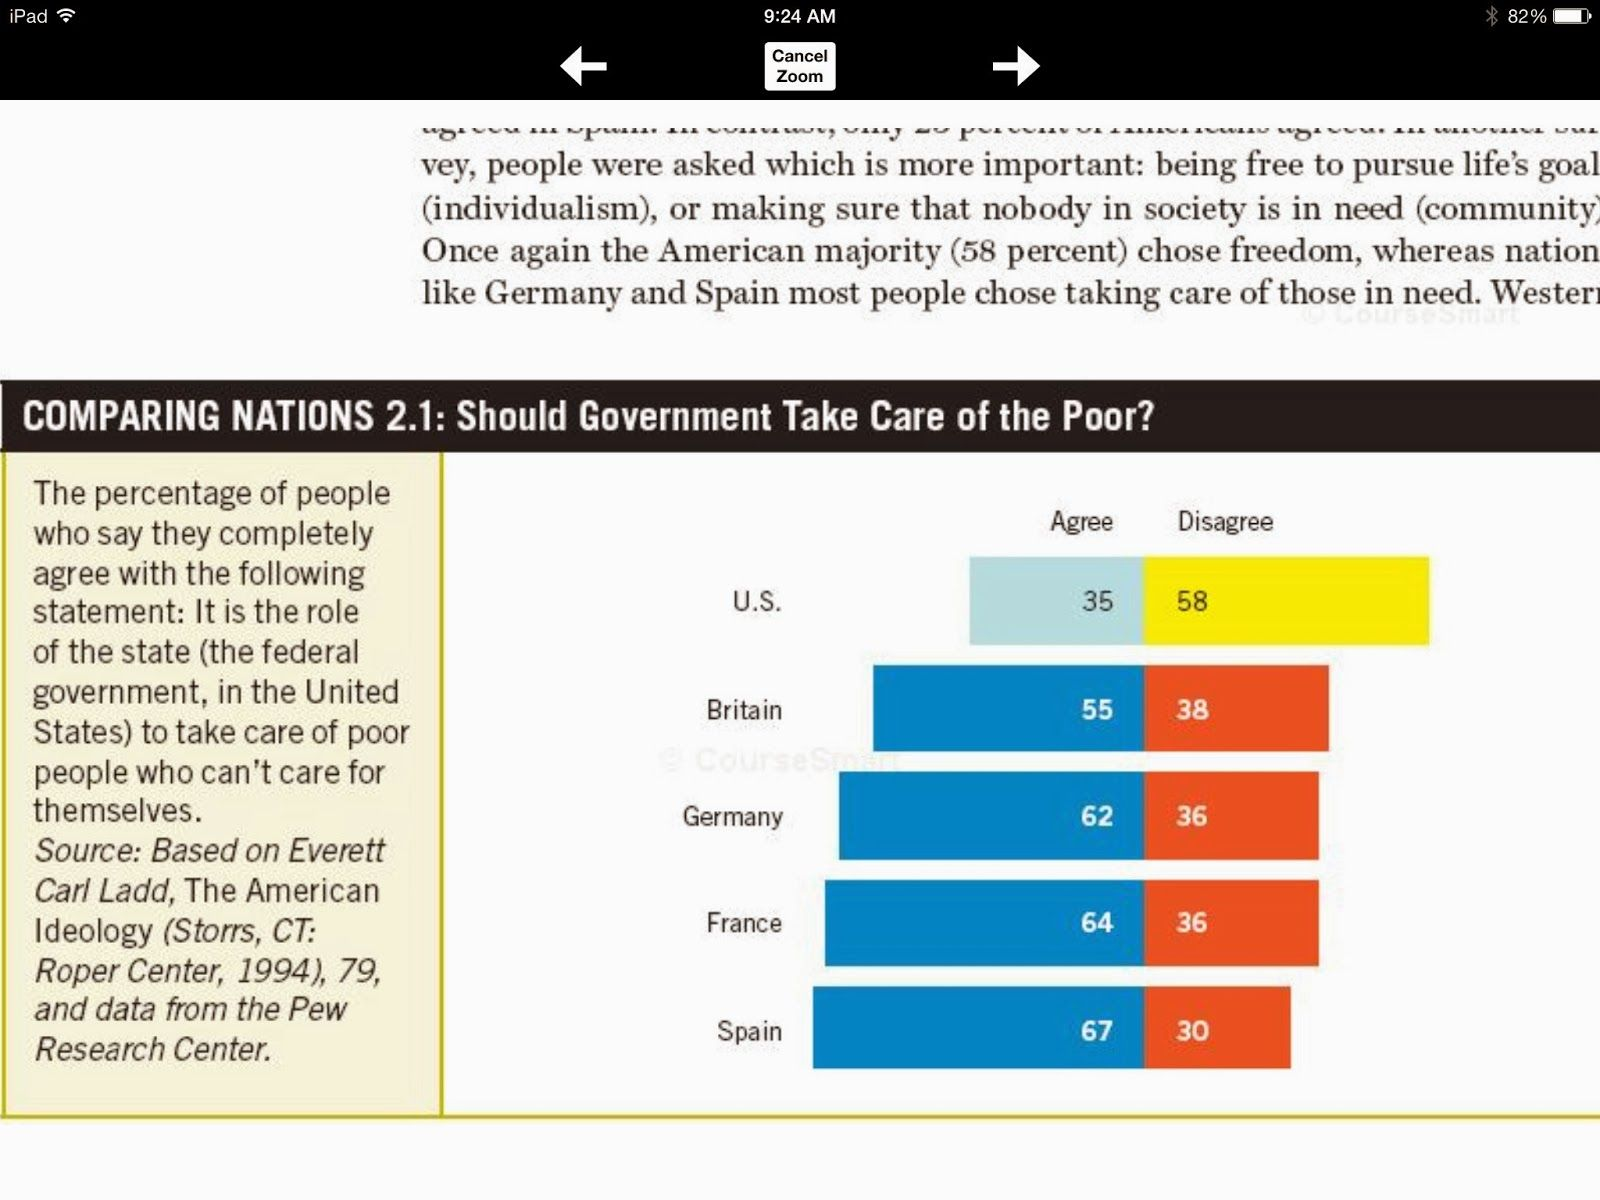 Should government take care of the poor?